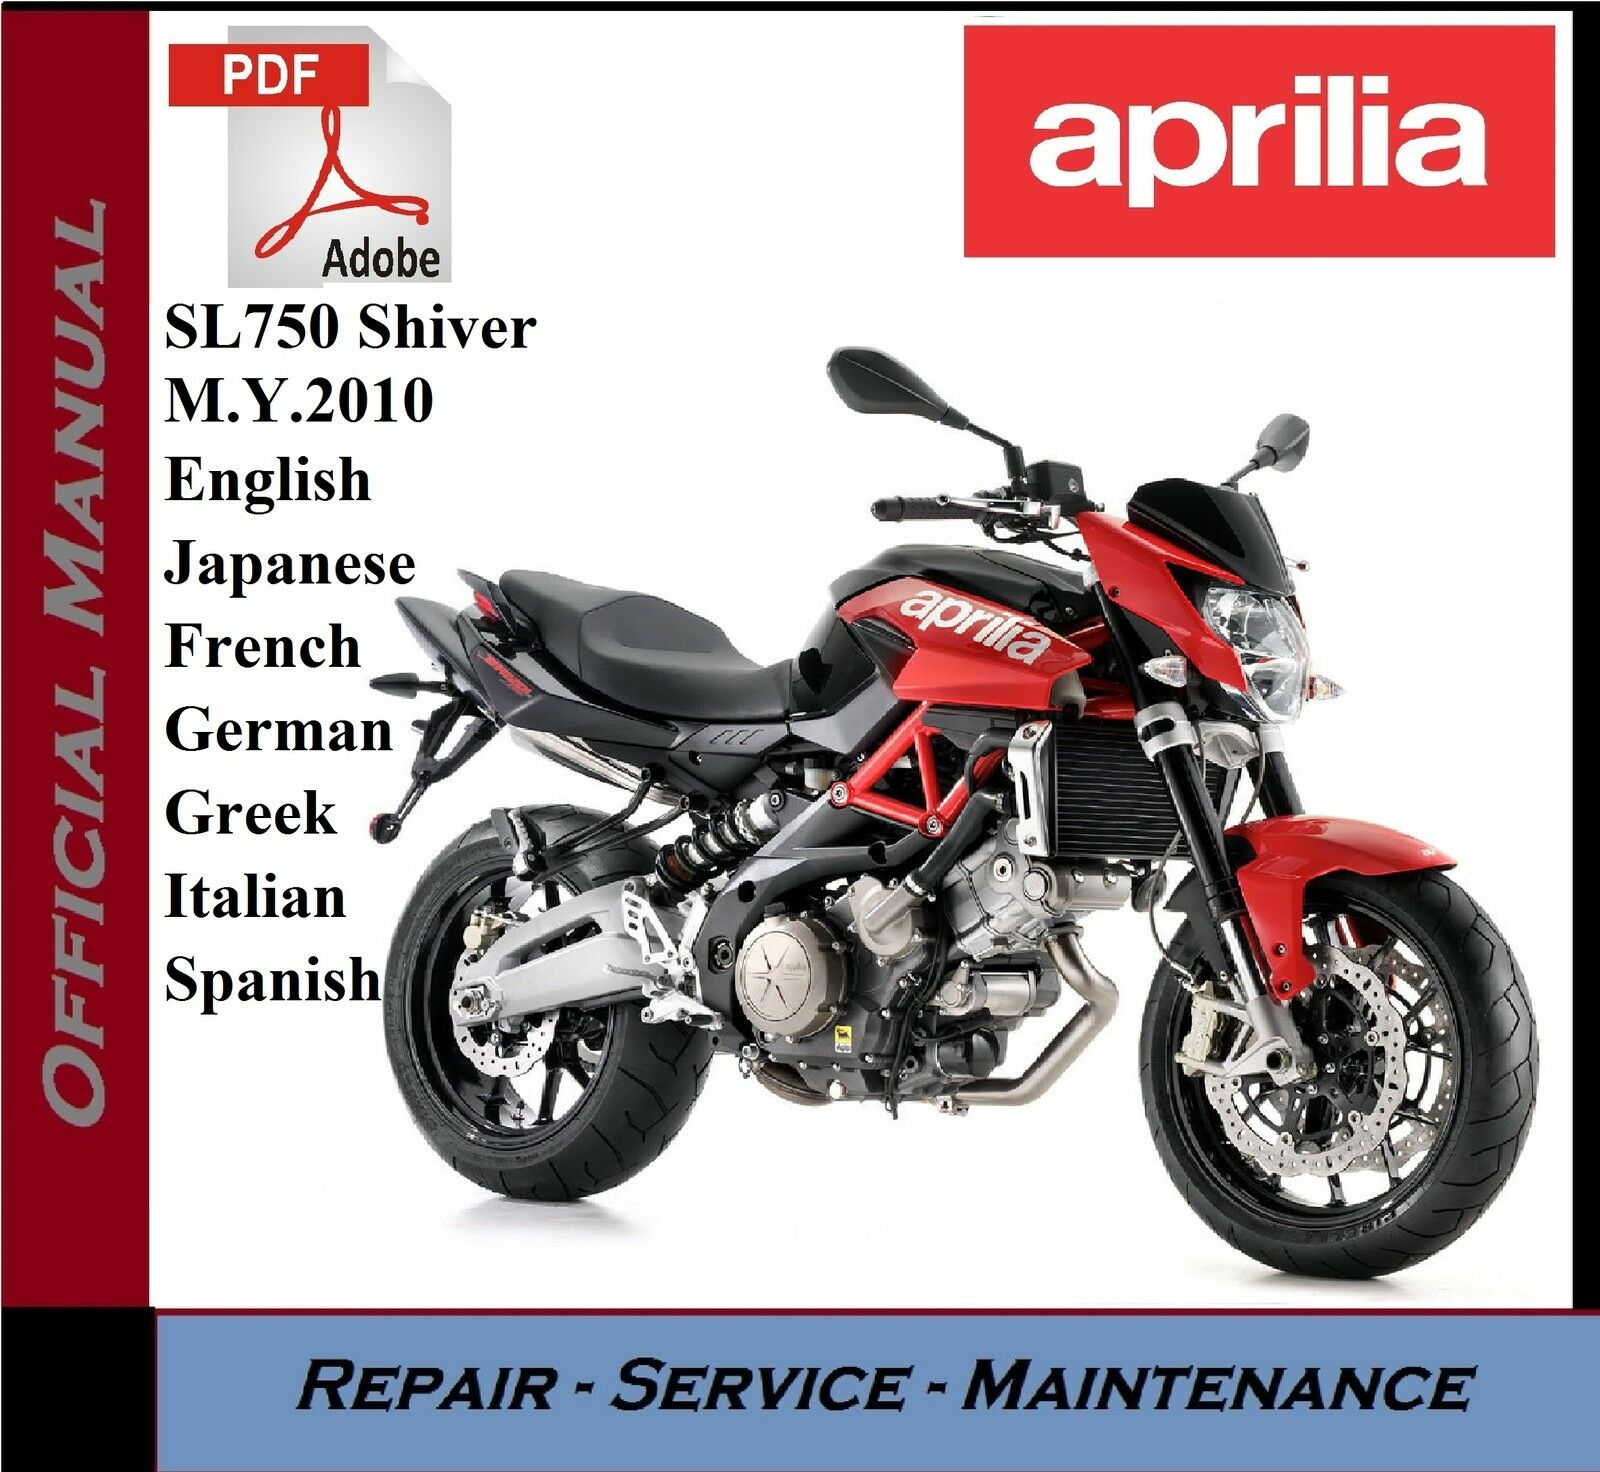 Aprilia SL750 Shiver M.Y.2010 Workshop Service Repair Manual 1 of 1FREE  Shipping ...